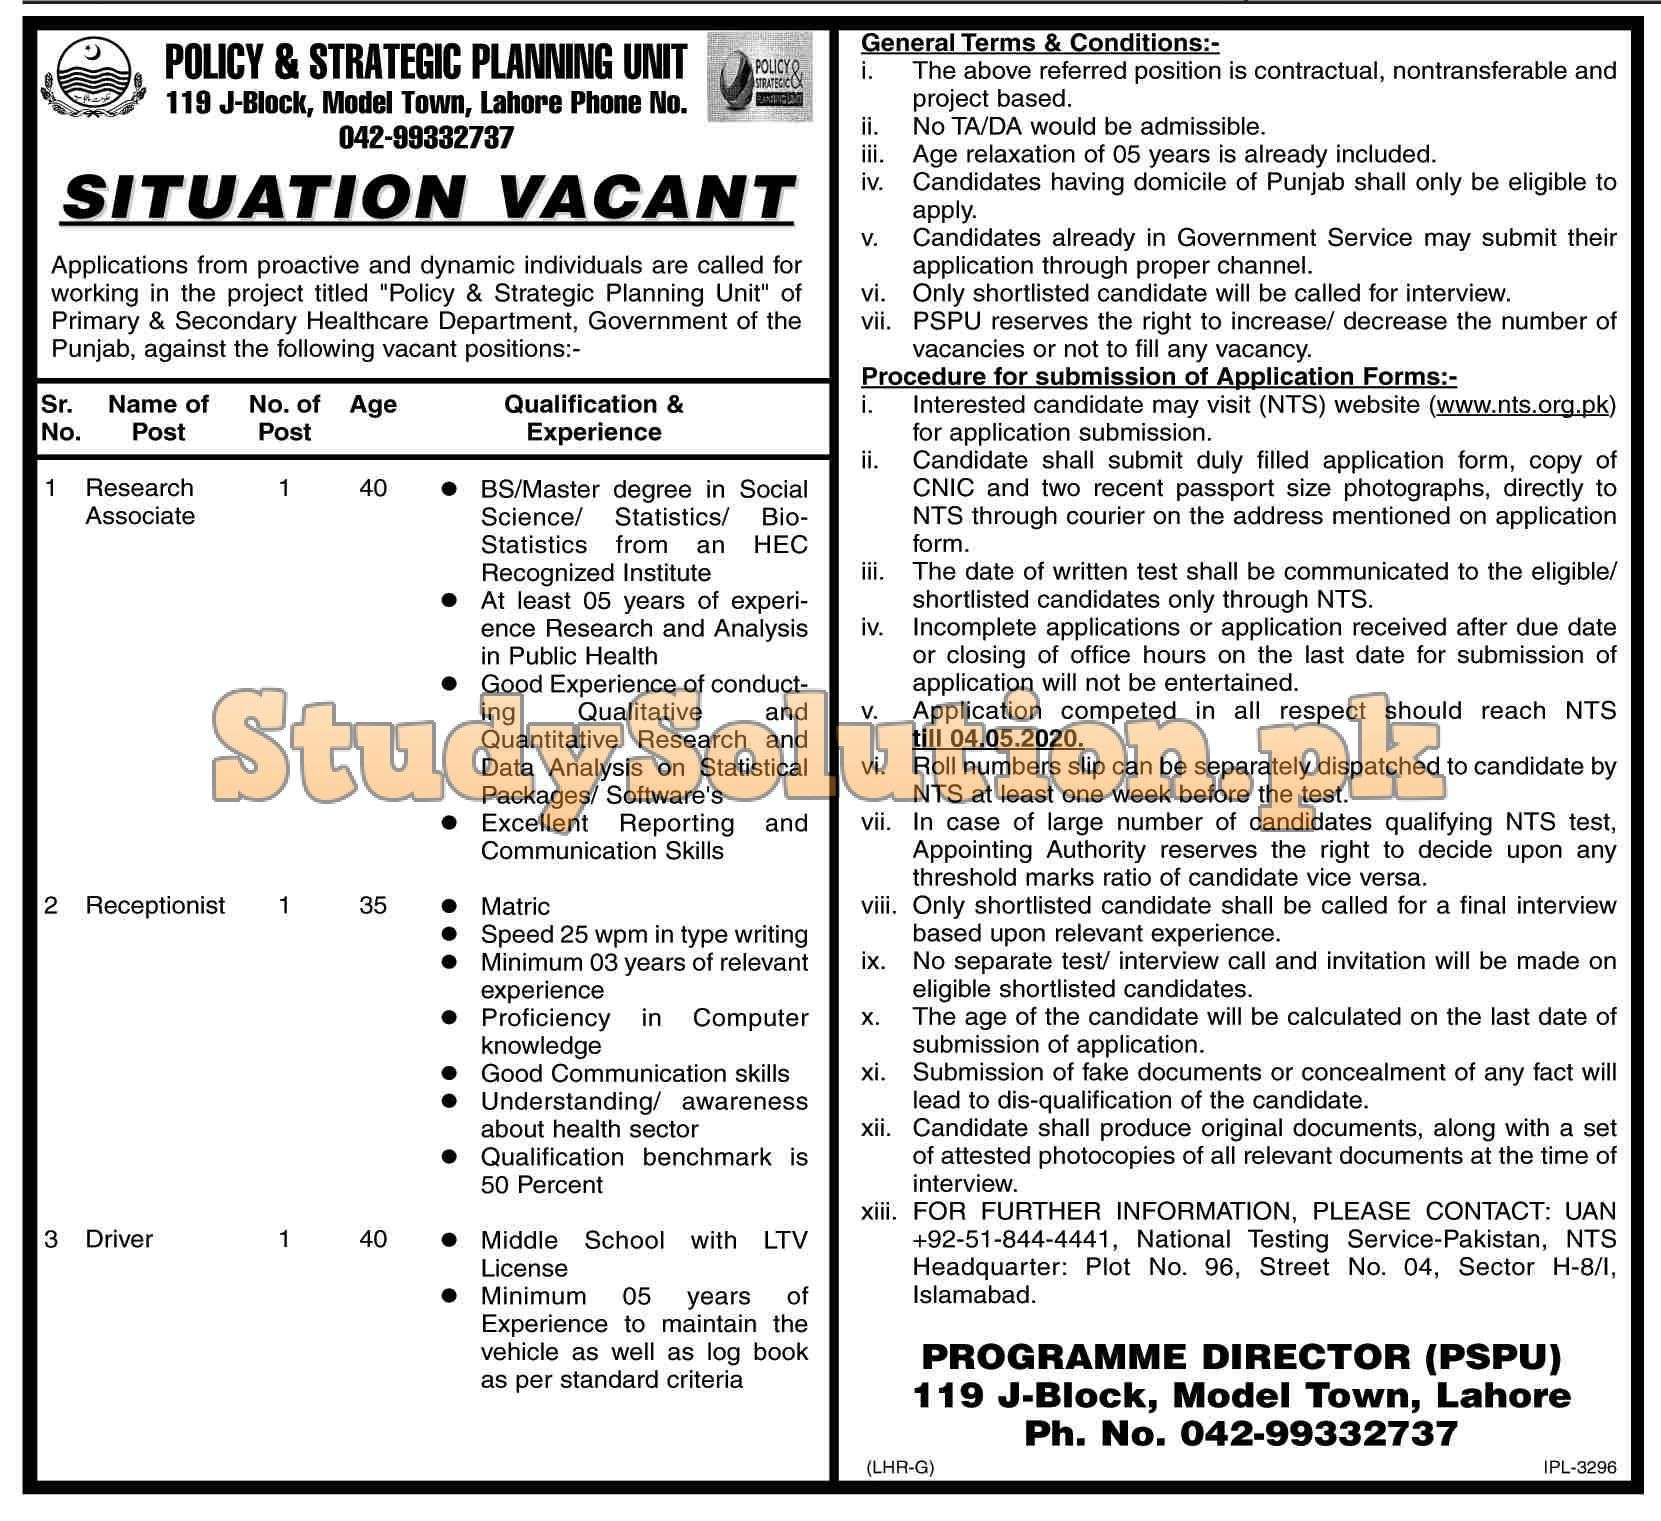 Policy and Strategic Planning Unit PSPU Jobs 2020